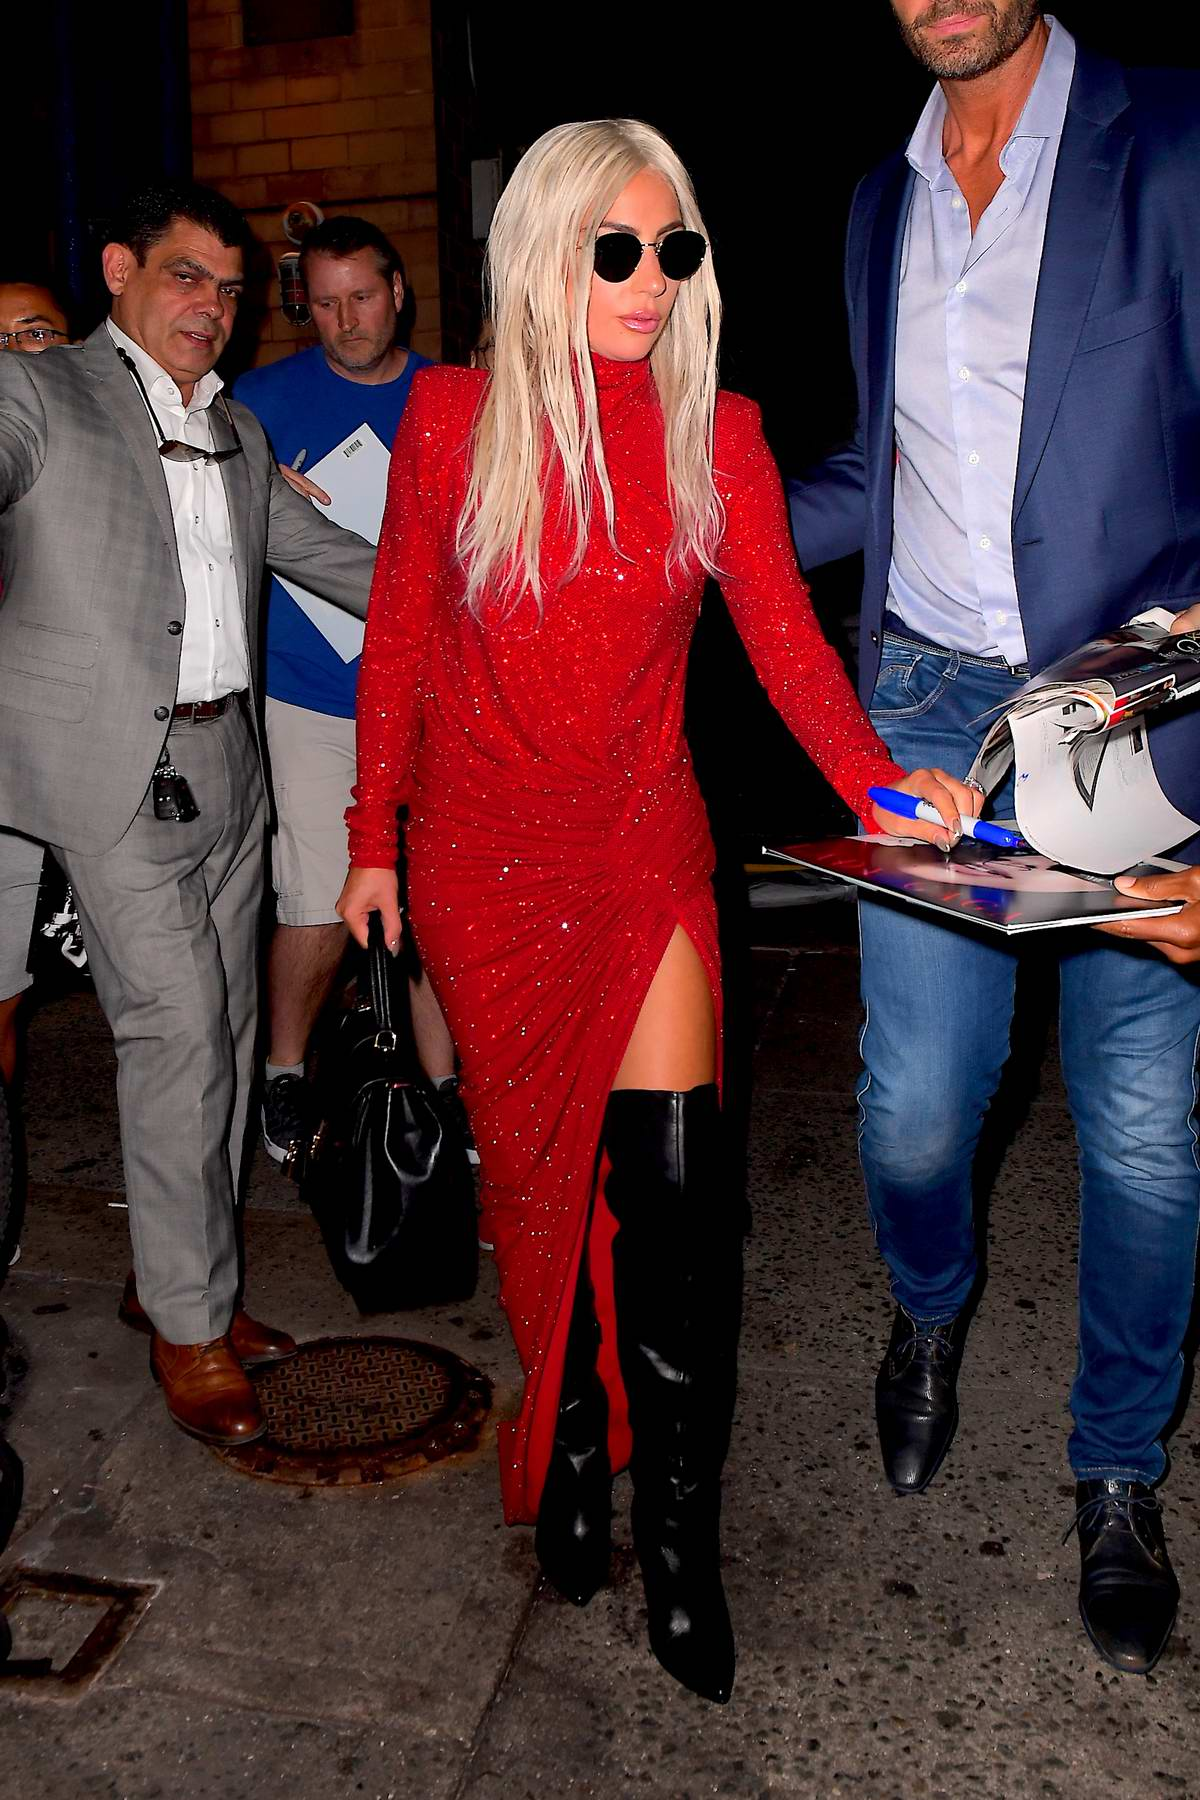 Lady Gaga steps out in a red slit dress with black thigh high boots in New York City